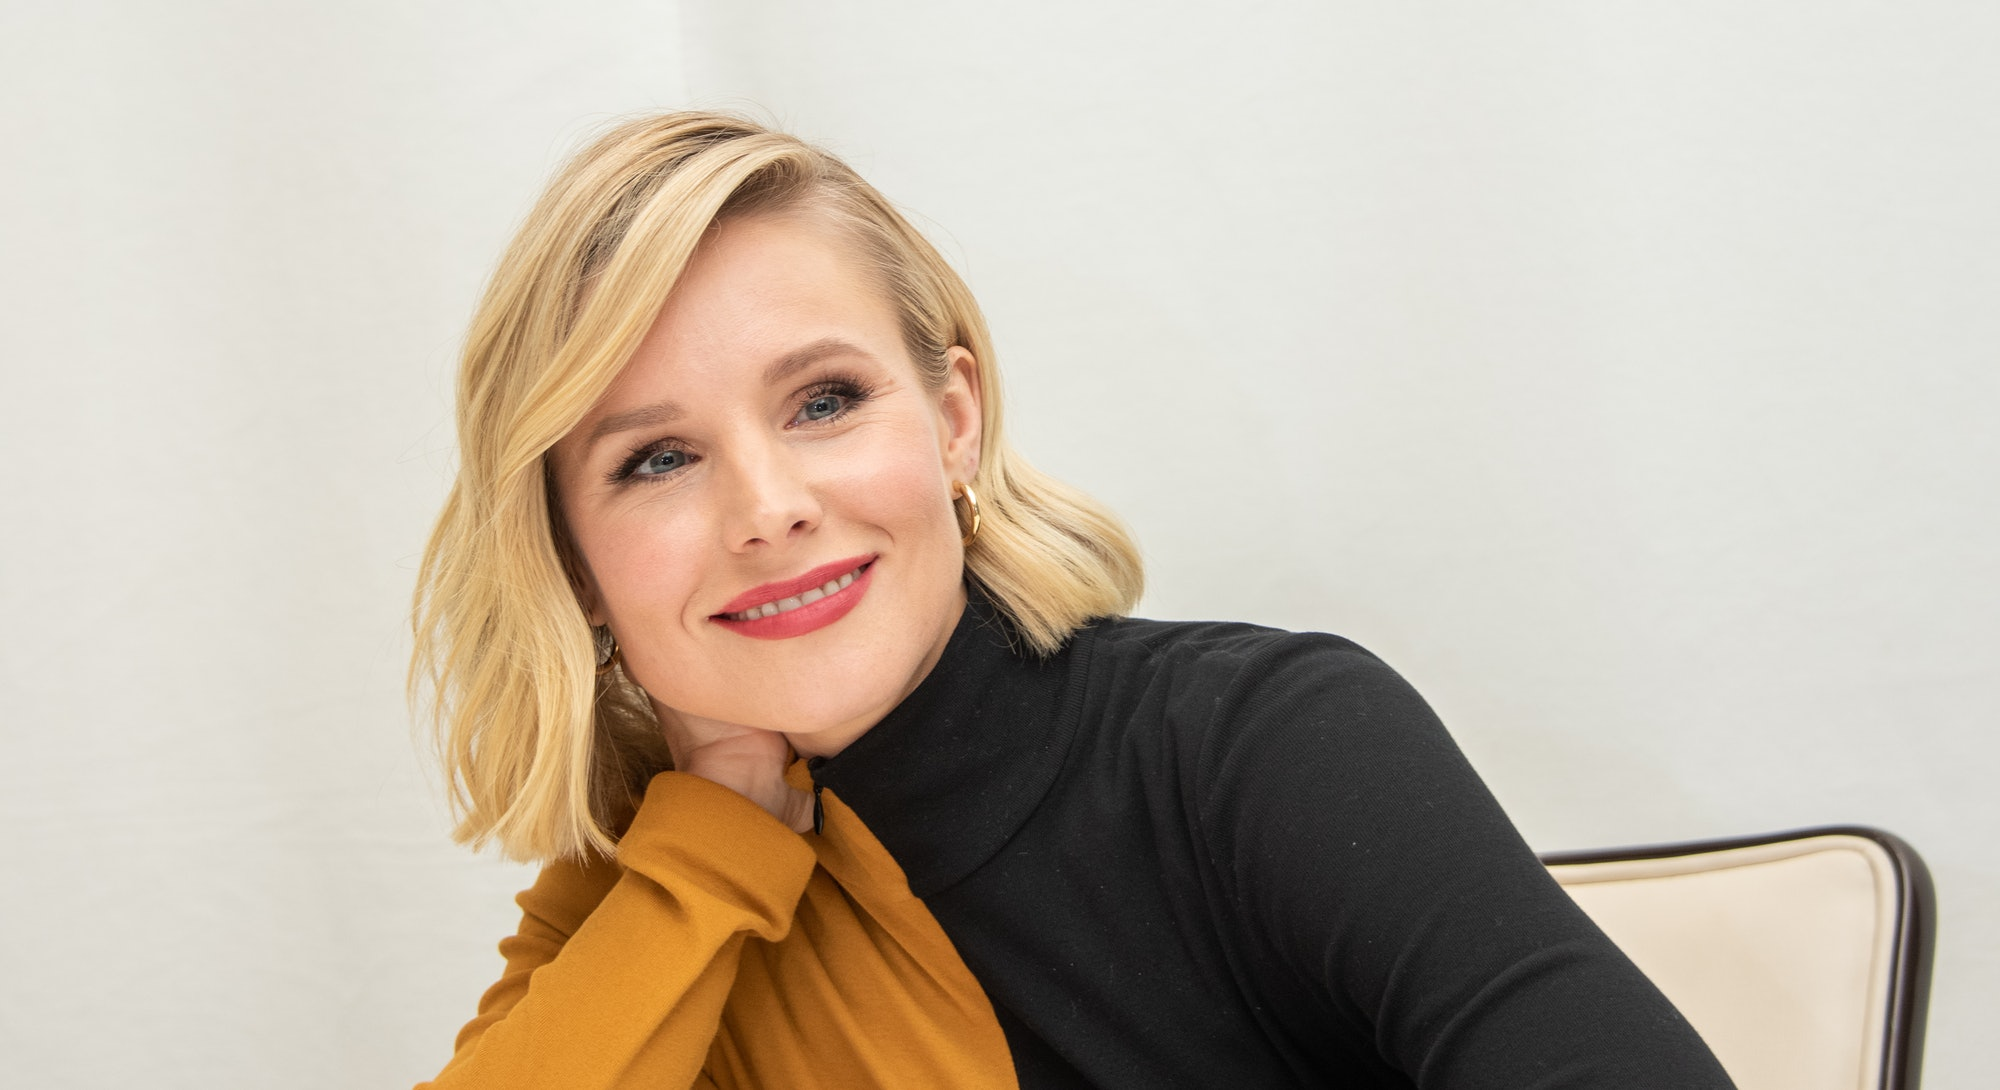 """BEVERLY HILLS, CALIFORNIA - OCTOBER 16: Kristen Bell at """"The Good Place"""" Press Conference at the Fou..."""